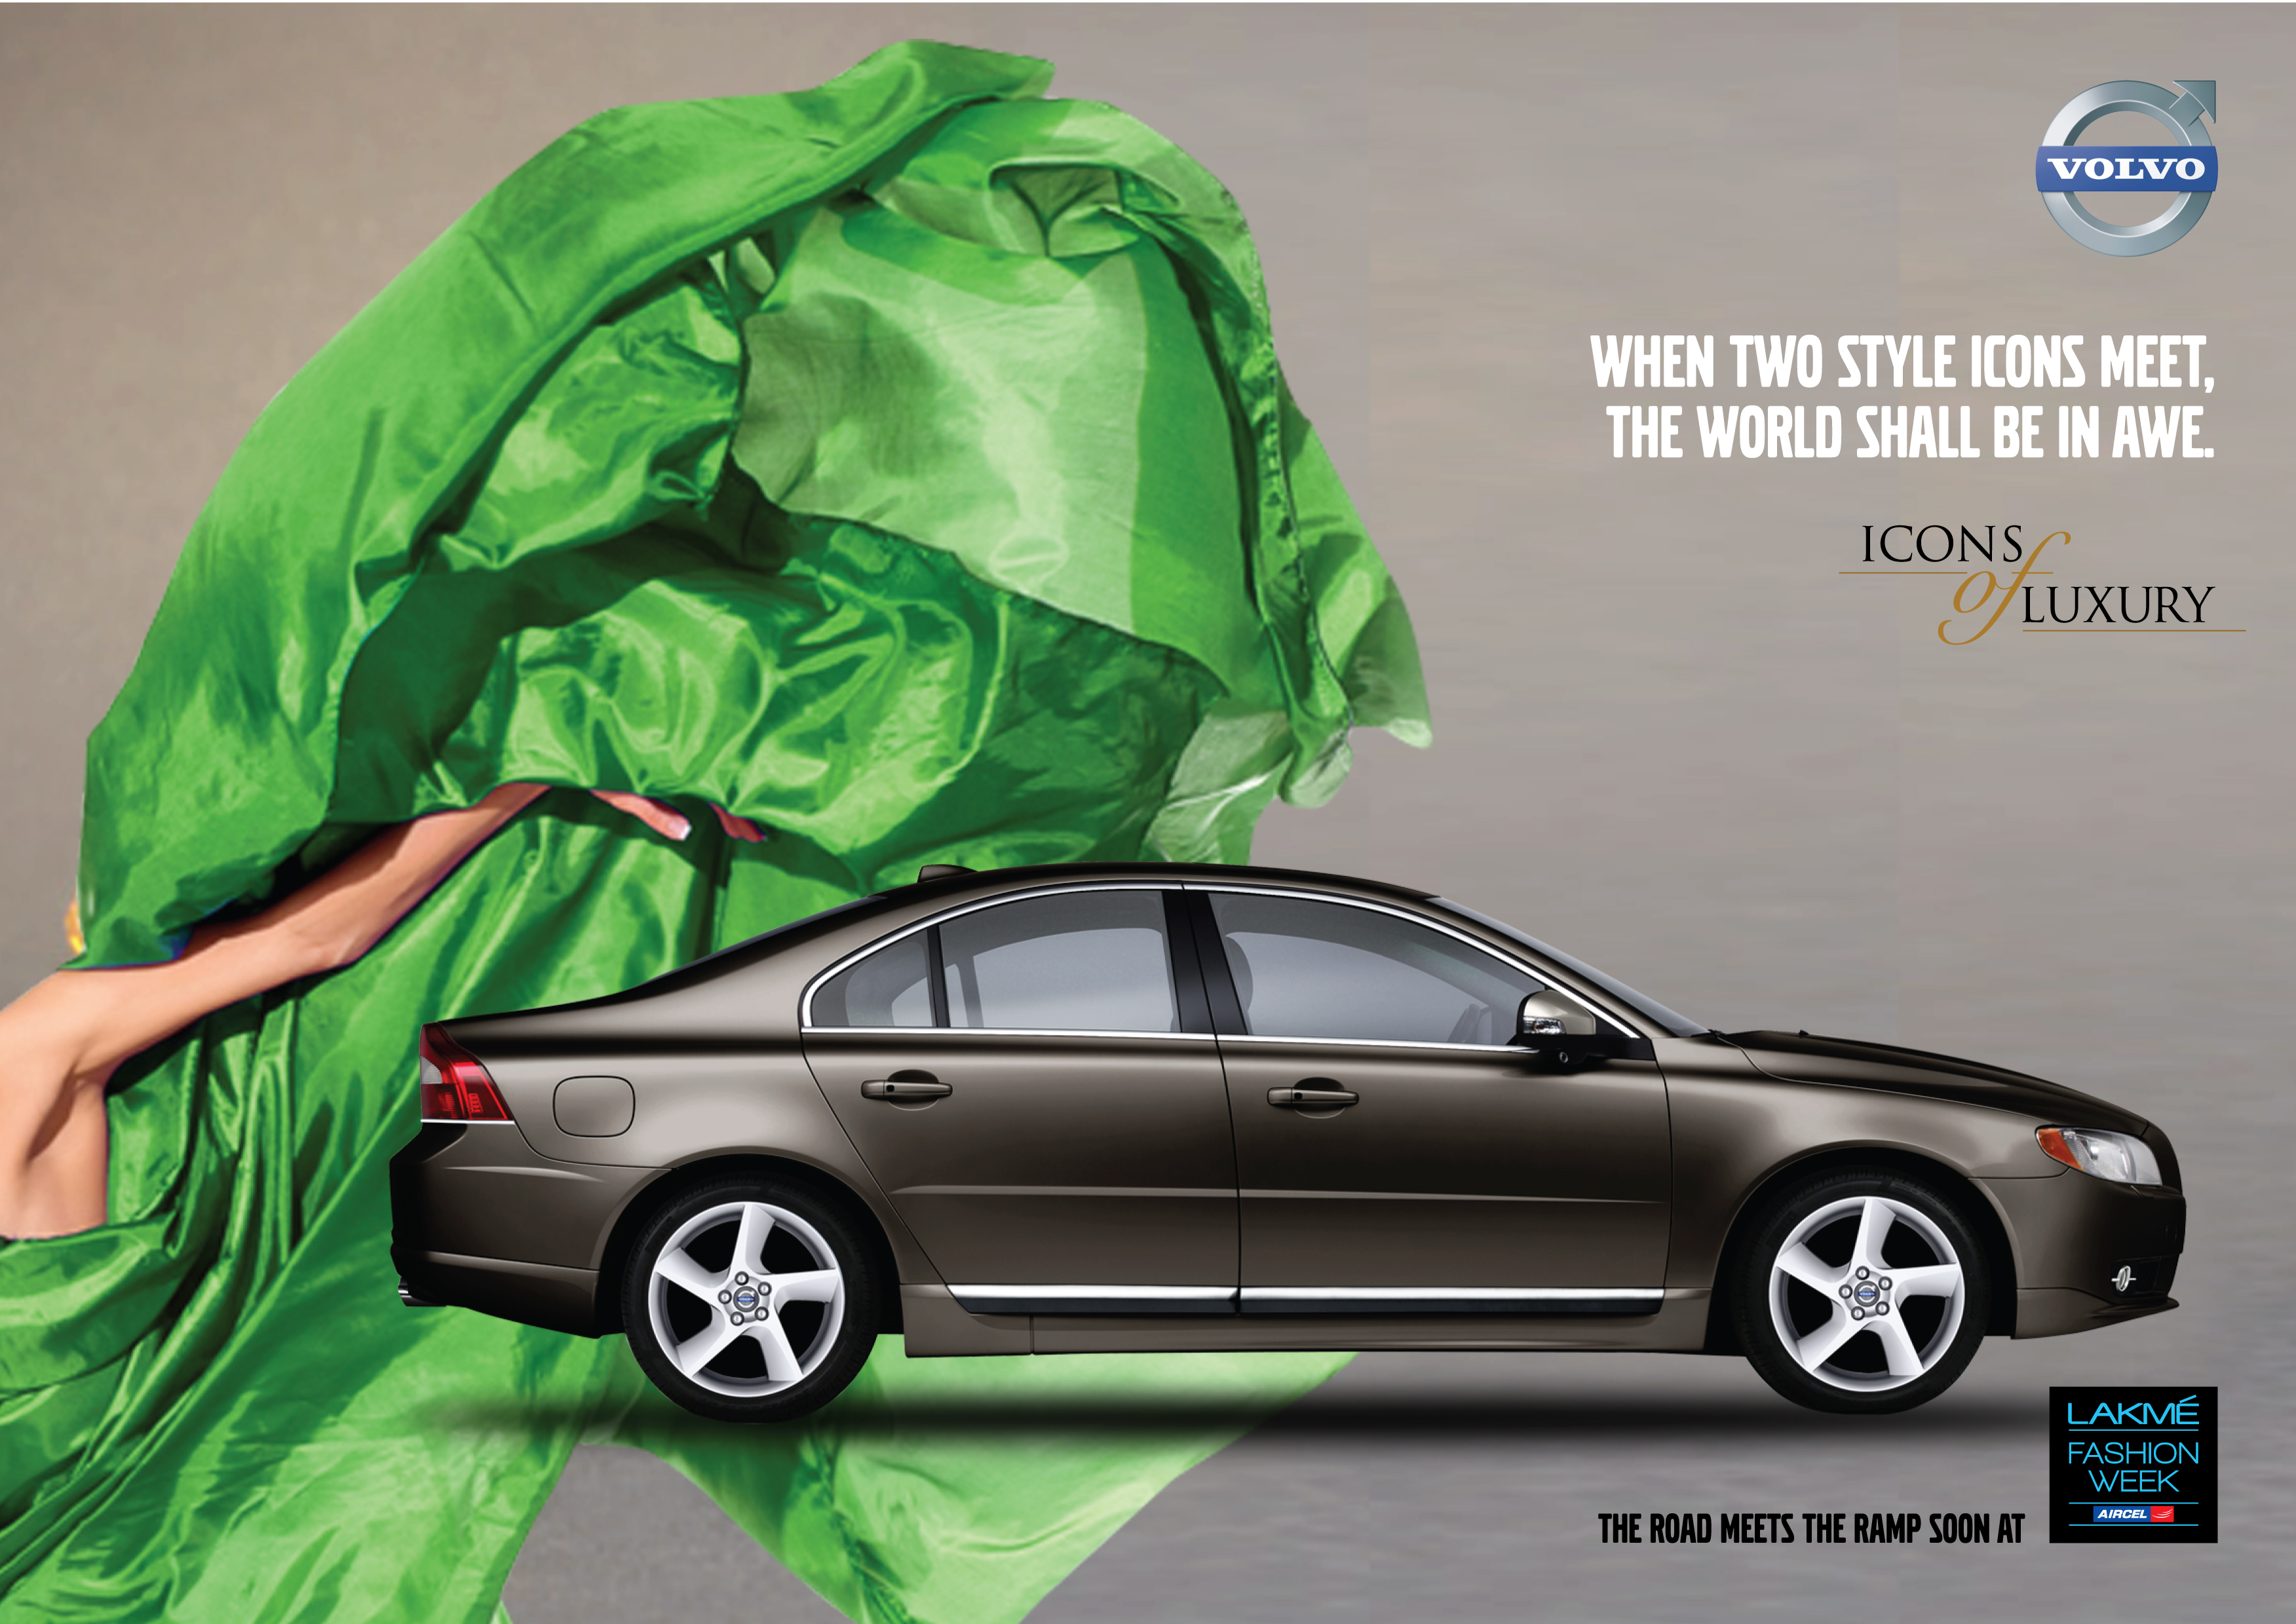 Volvo-Cars-are-the-Official-Car-Partner-for-Lakm-Fashion-Week-2012